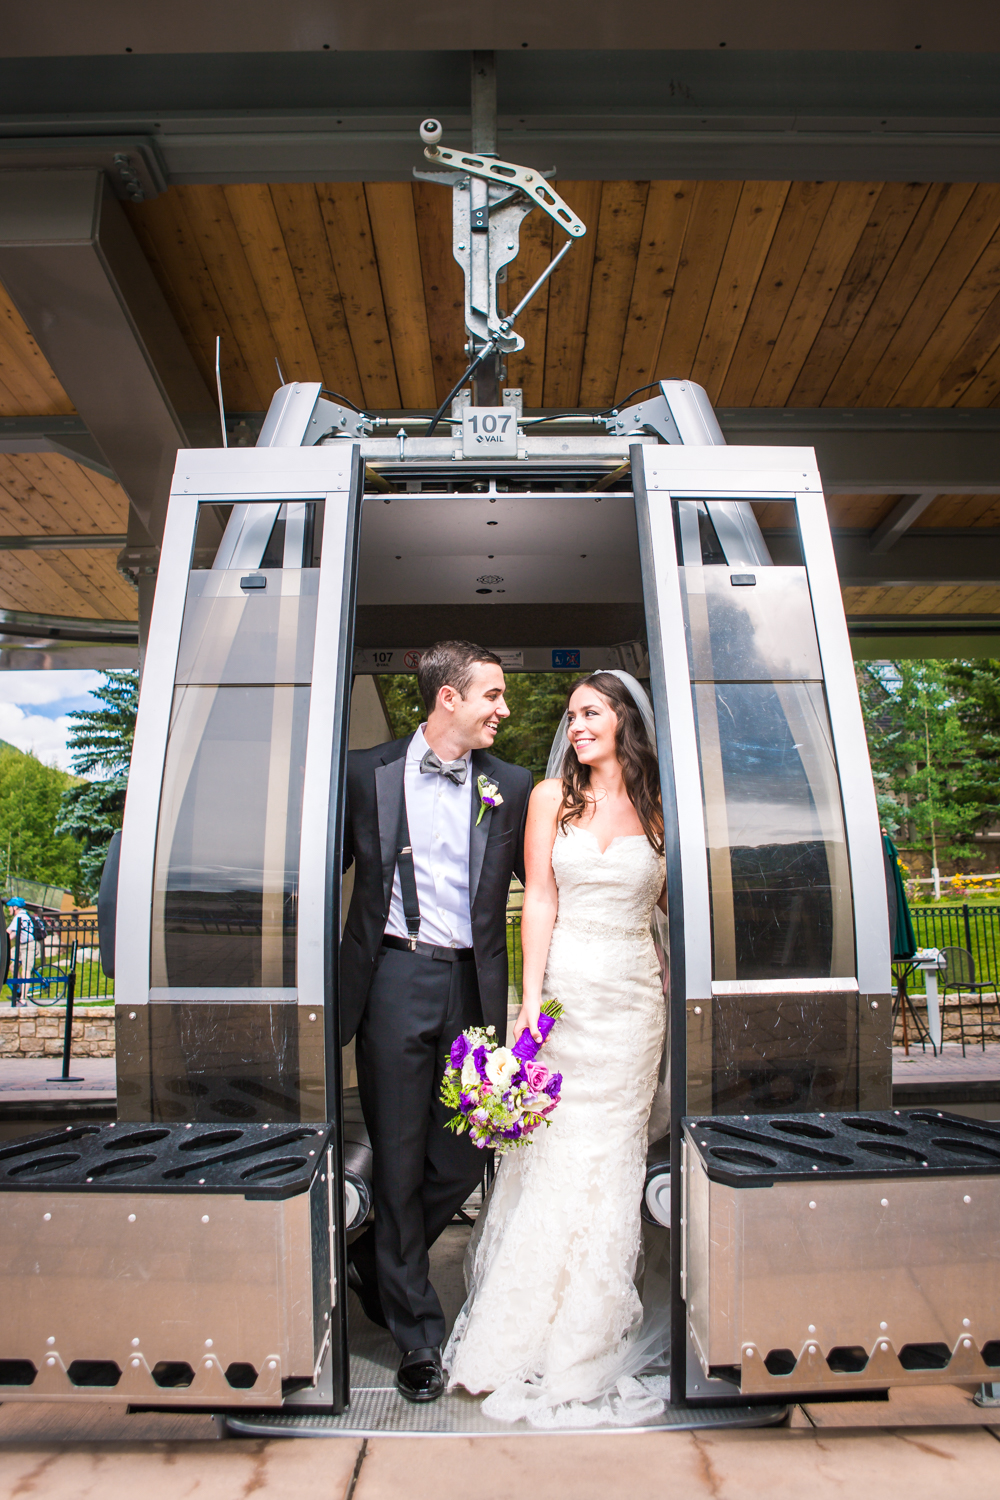 Riding the gondola up to The 10th Restaurant for a Vail Colorado Wedding photographed by JMGant Photography.